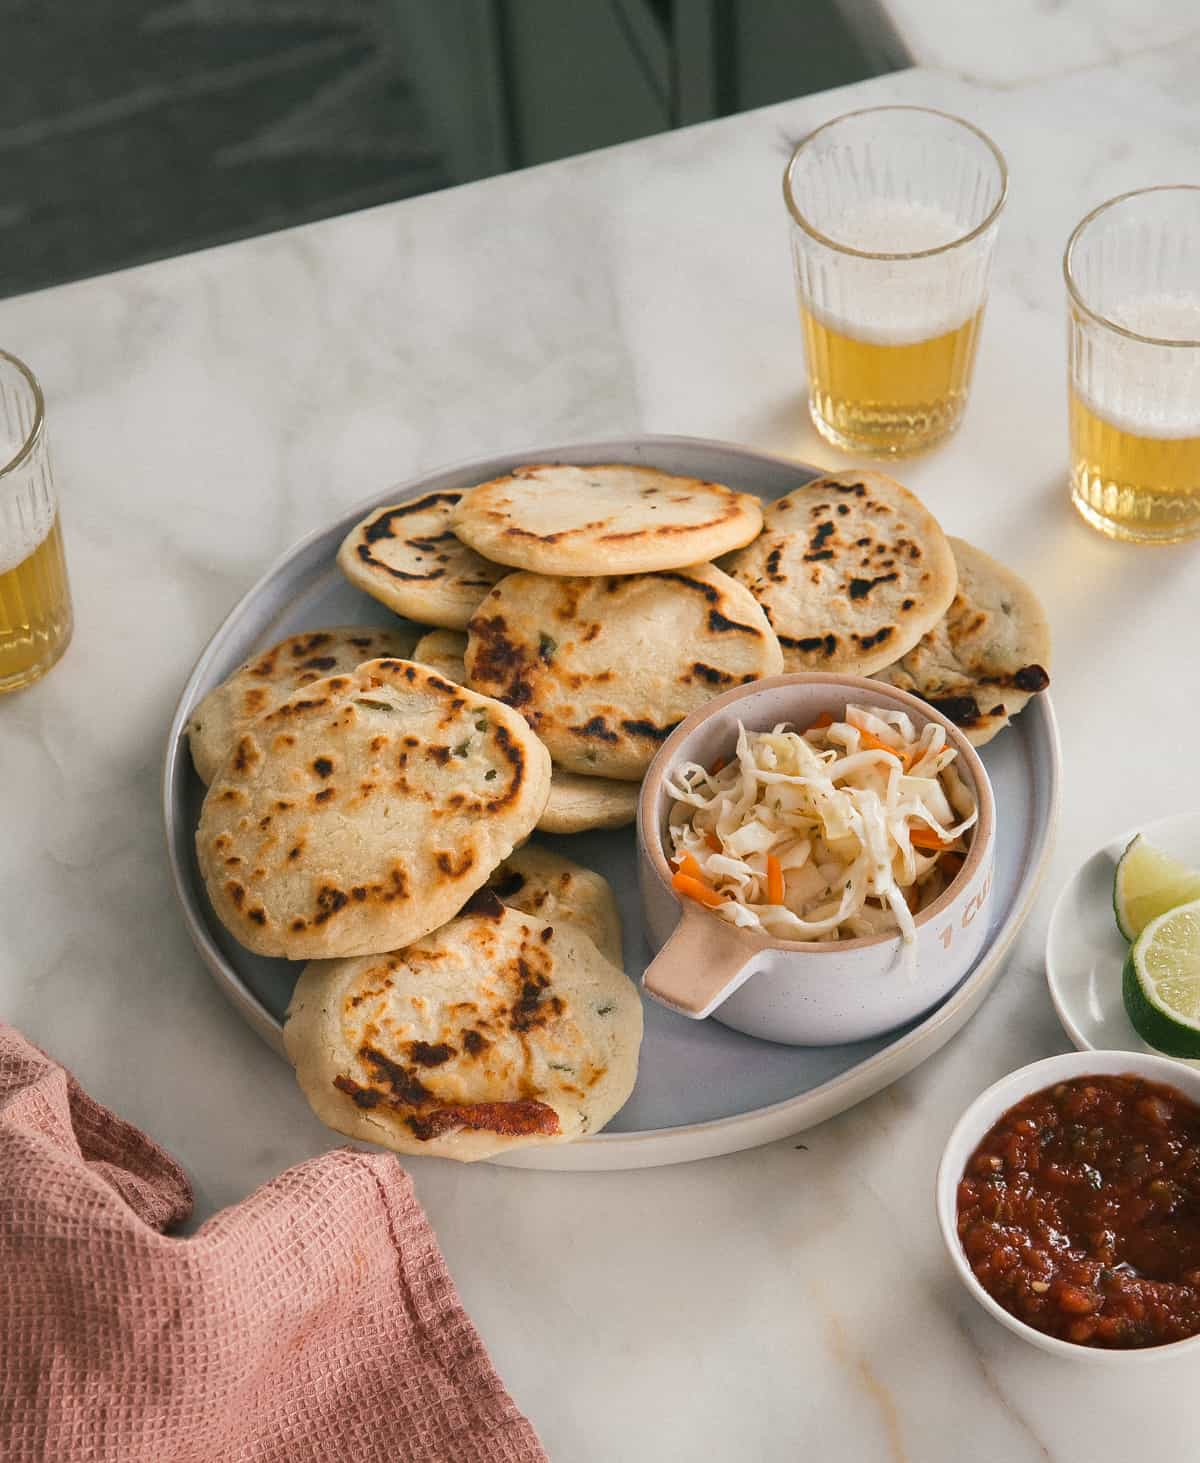 Pupusas on a plate surrounded by beer